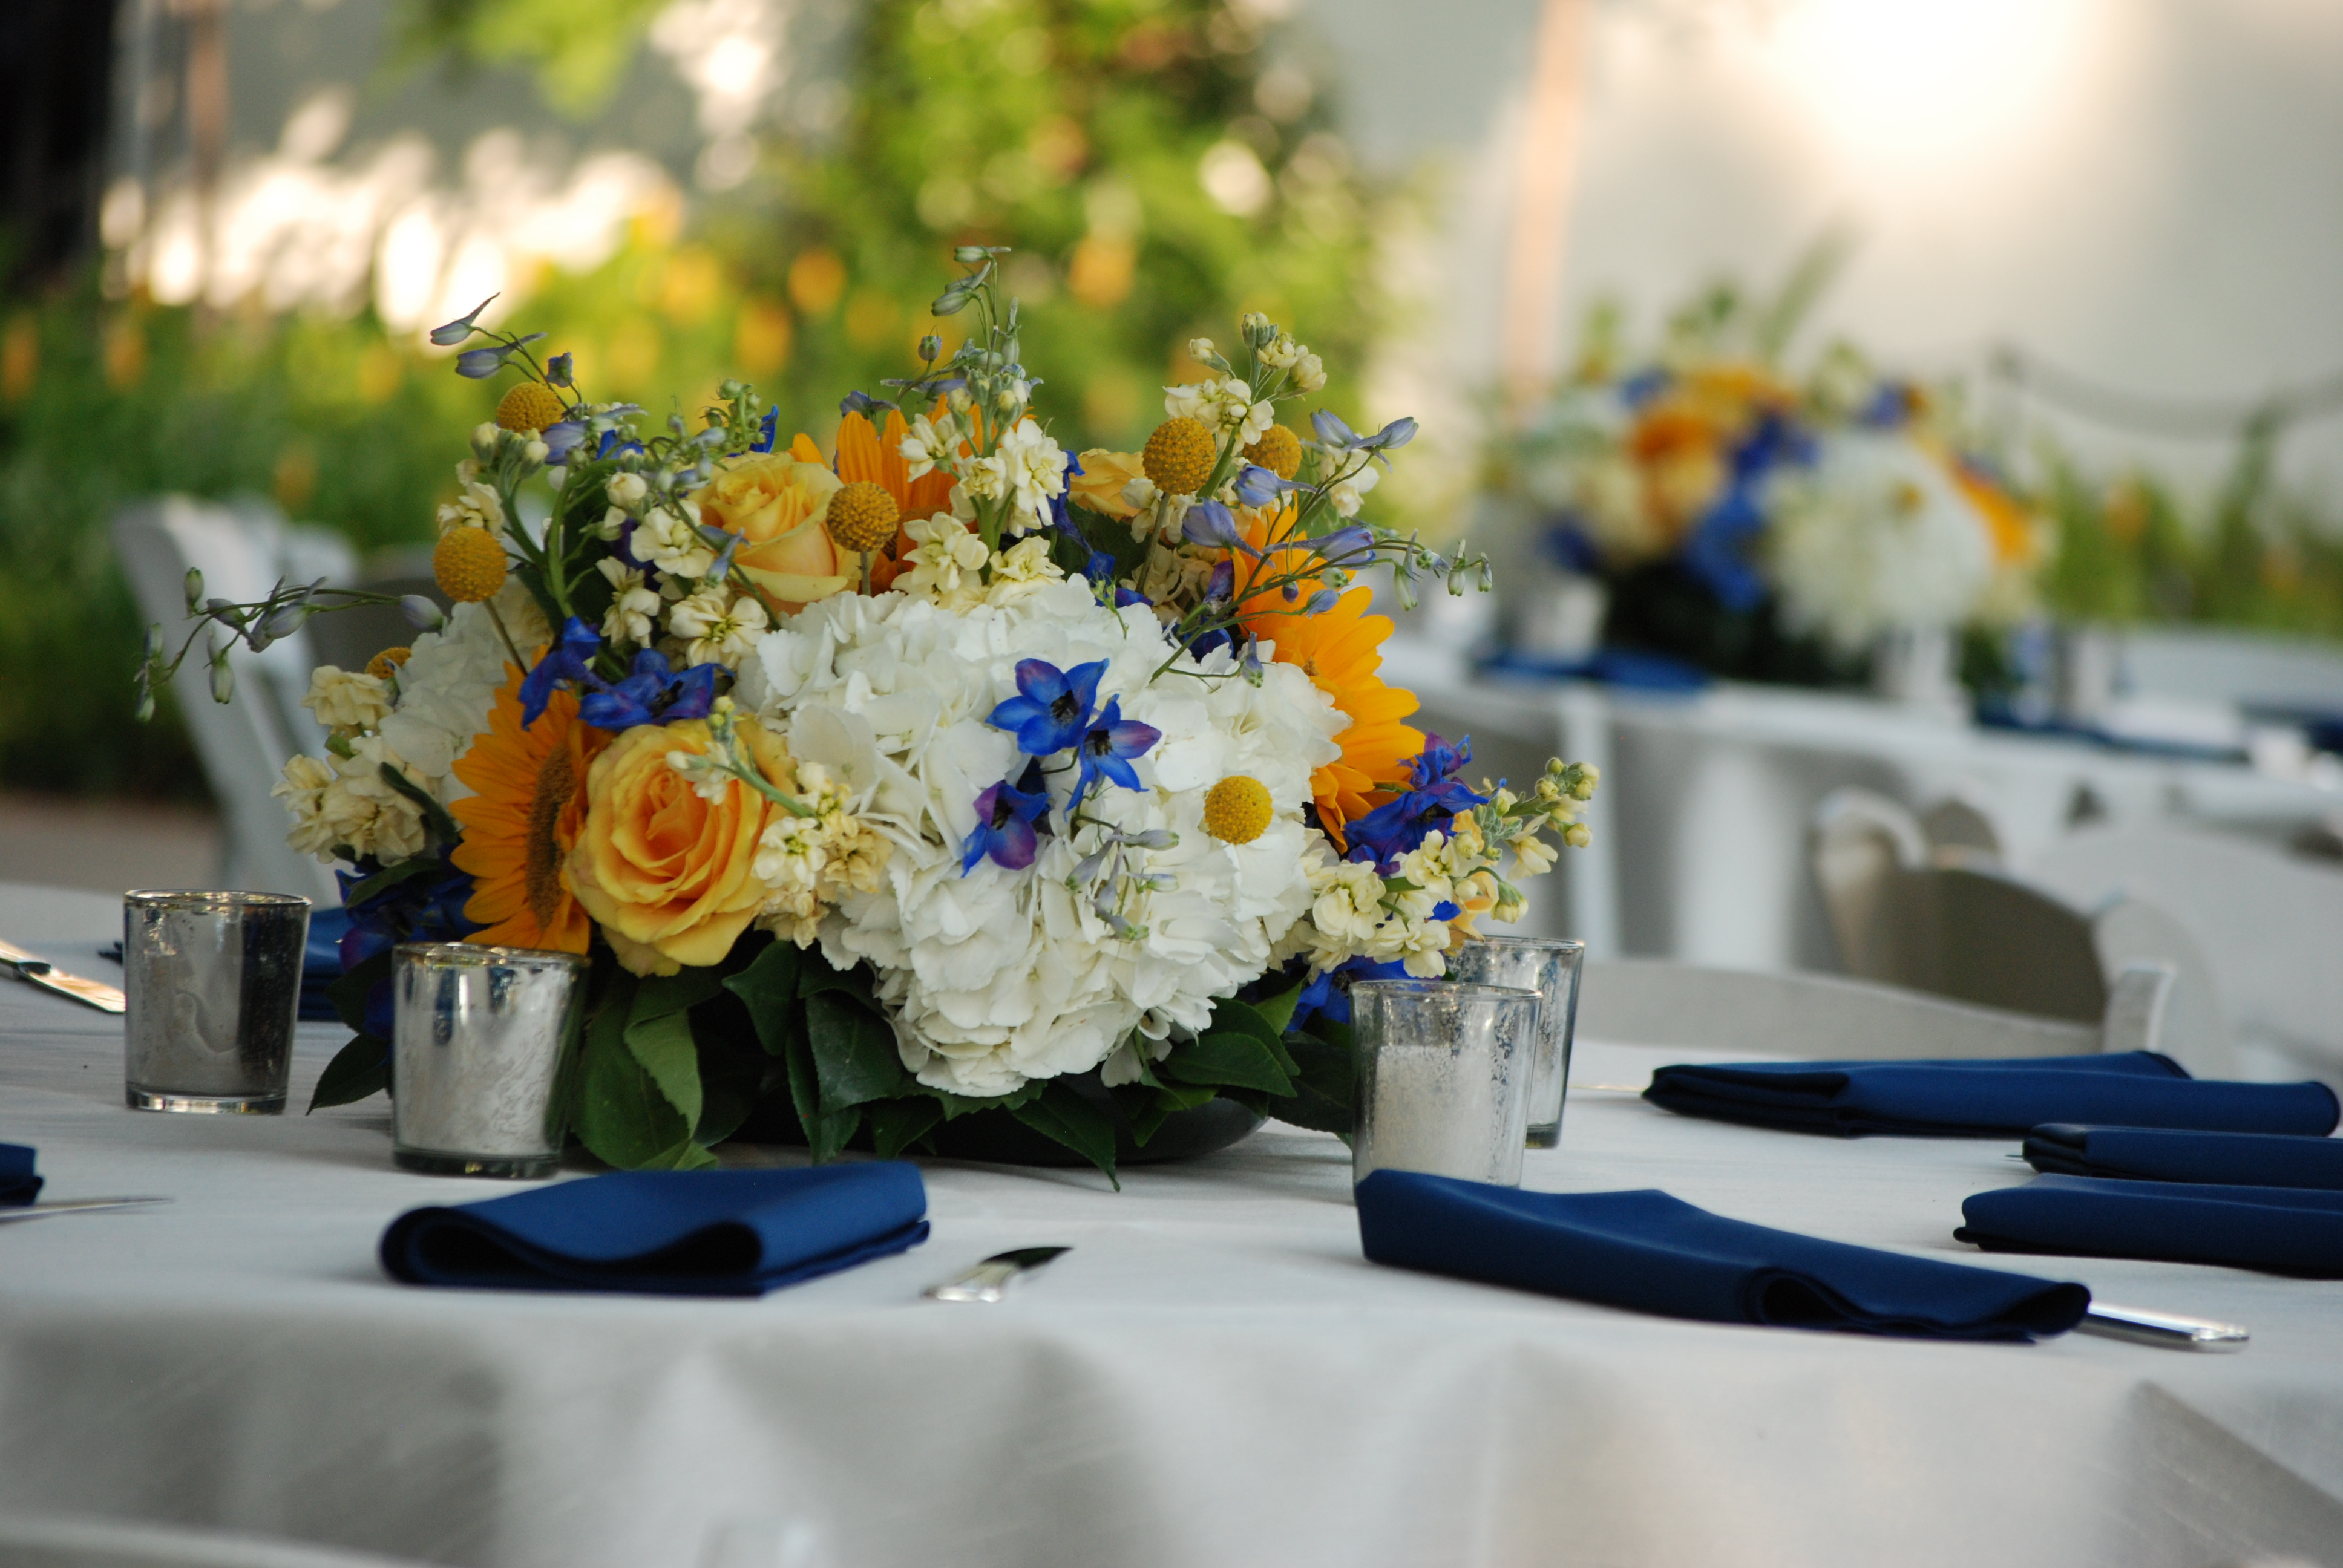 Blue yellow wedding at the dallas arboretum cebolla fine flowers cebolla fine flowers dallas arboretum wedding blue and yellow wedding centerpieces white hydrangea izmirmasajfo